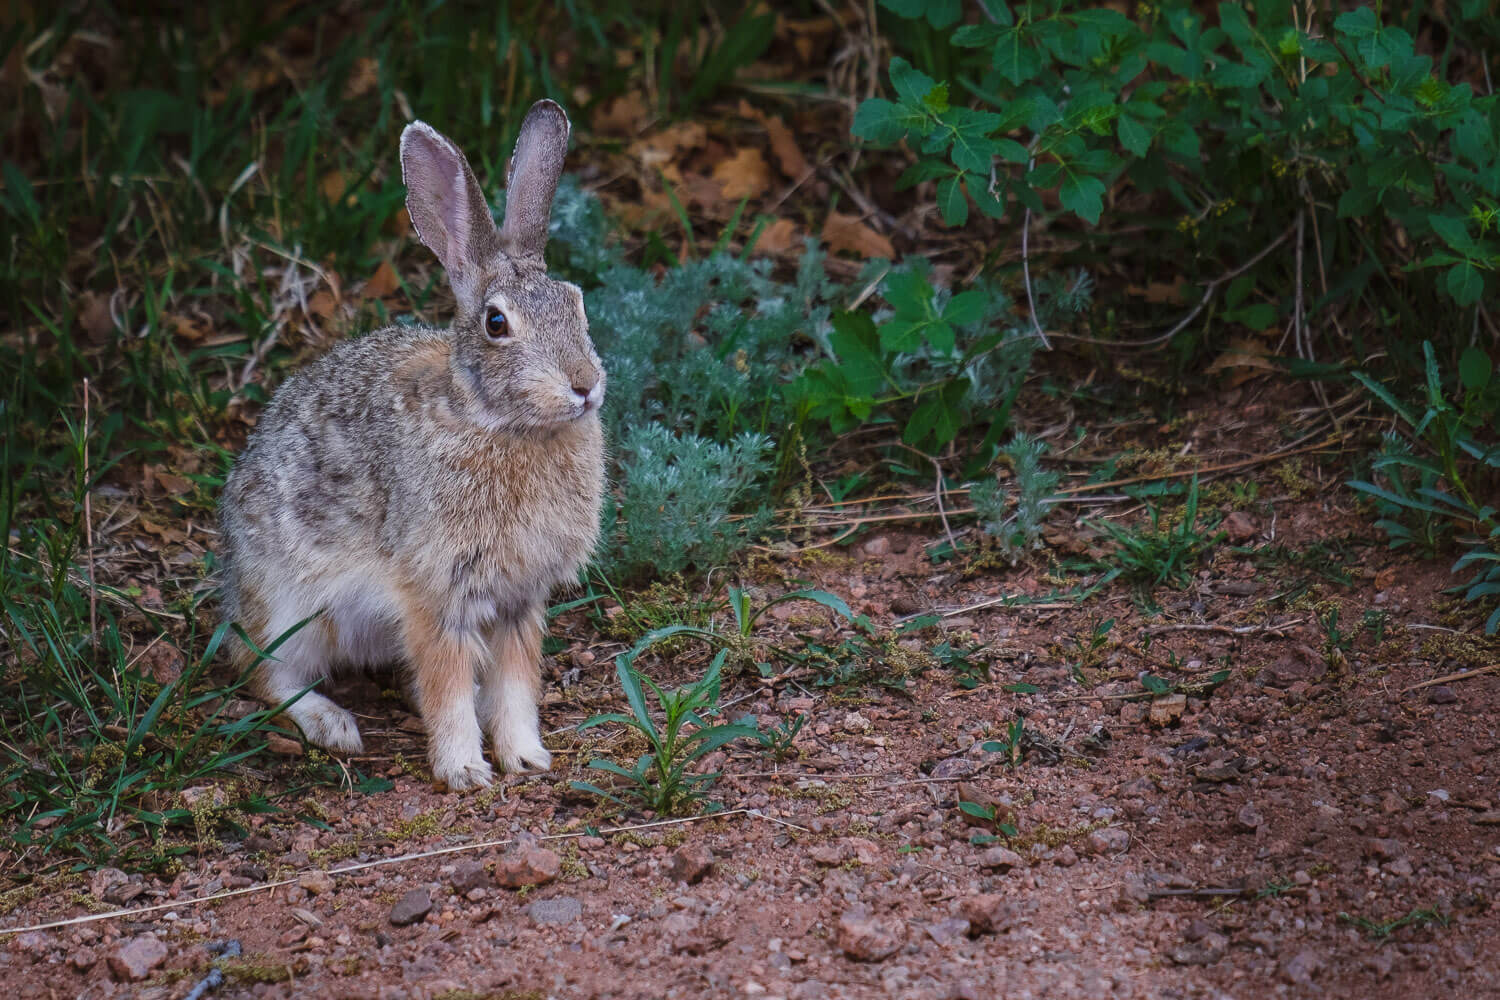 """A wild rabbit, Garden of the Gods. Travel photography and guide by © Natasha Lequepeys for """"And Then I Met Yoko"""". #colorado #usa #coloradosprings #travelguide #coloradoitinerary #fujifilm"""